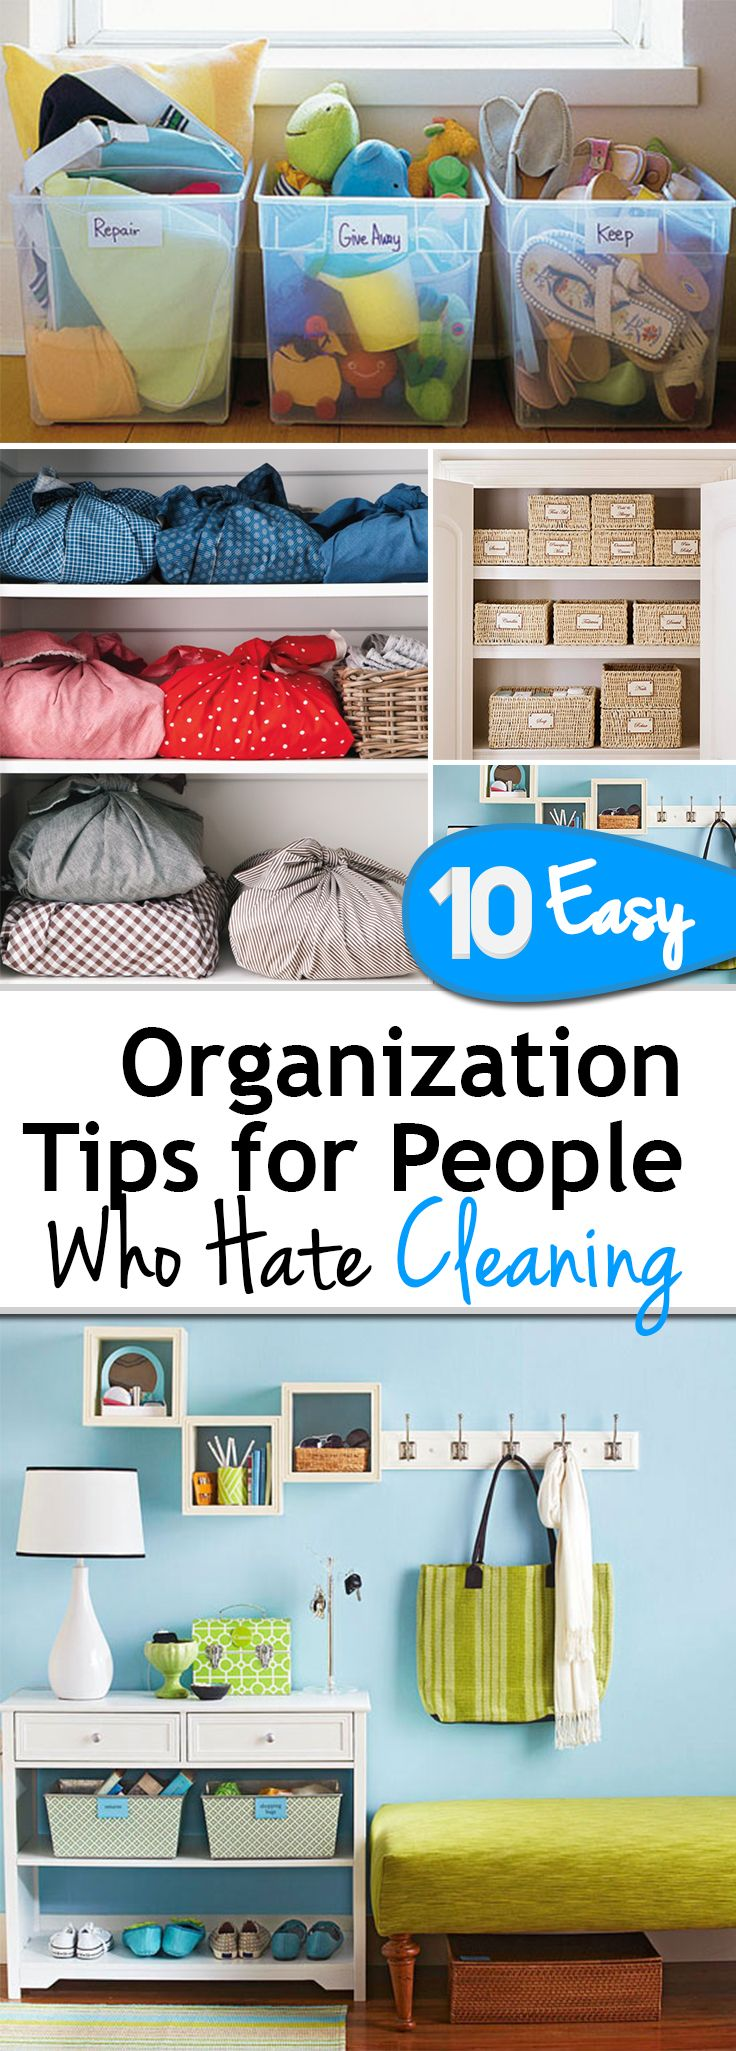 531 best Clean and orderly! images on Pinterest | Households ...